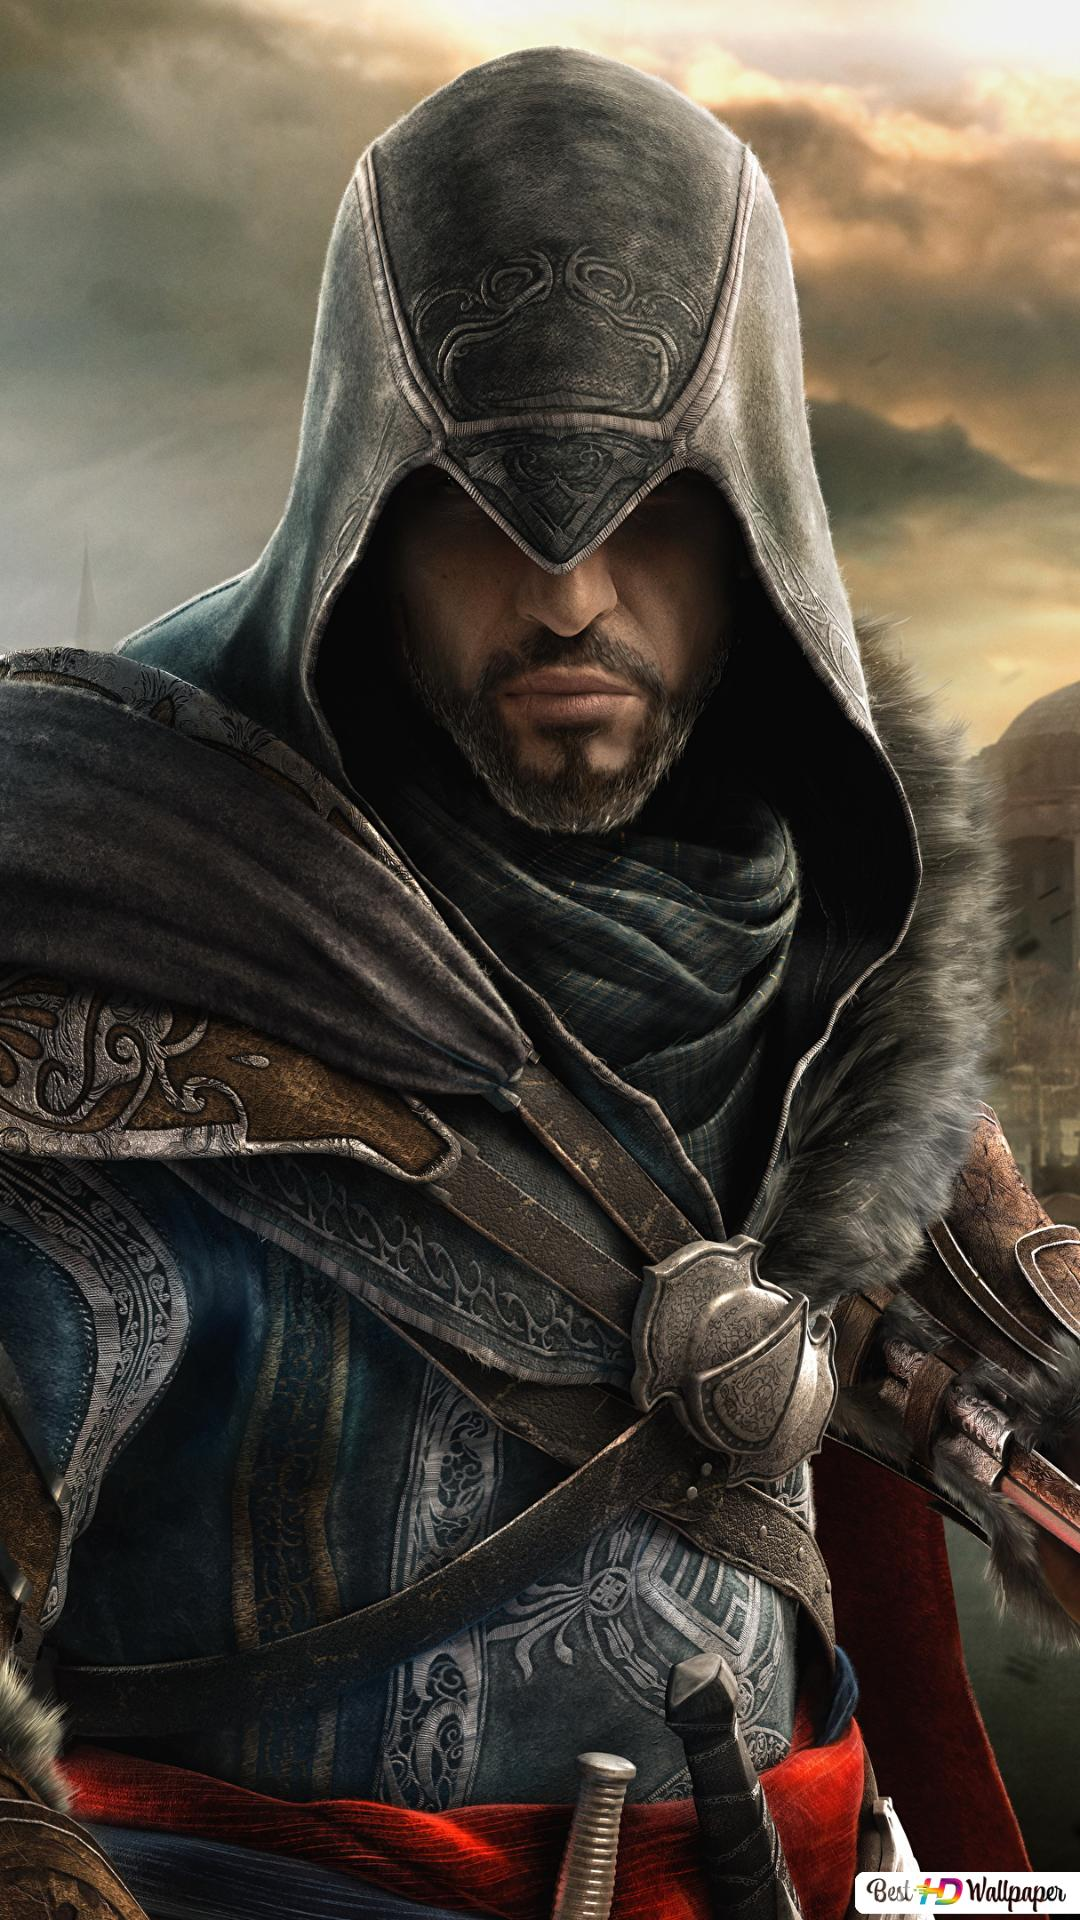 Assassins Creed Revelations Ezio Vs Altair Hd